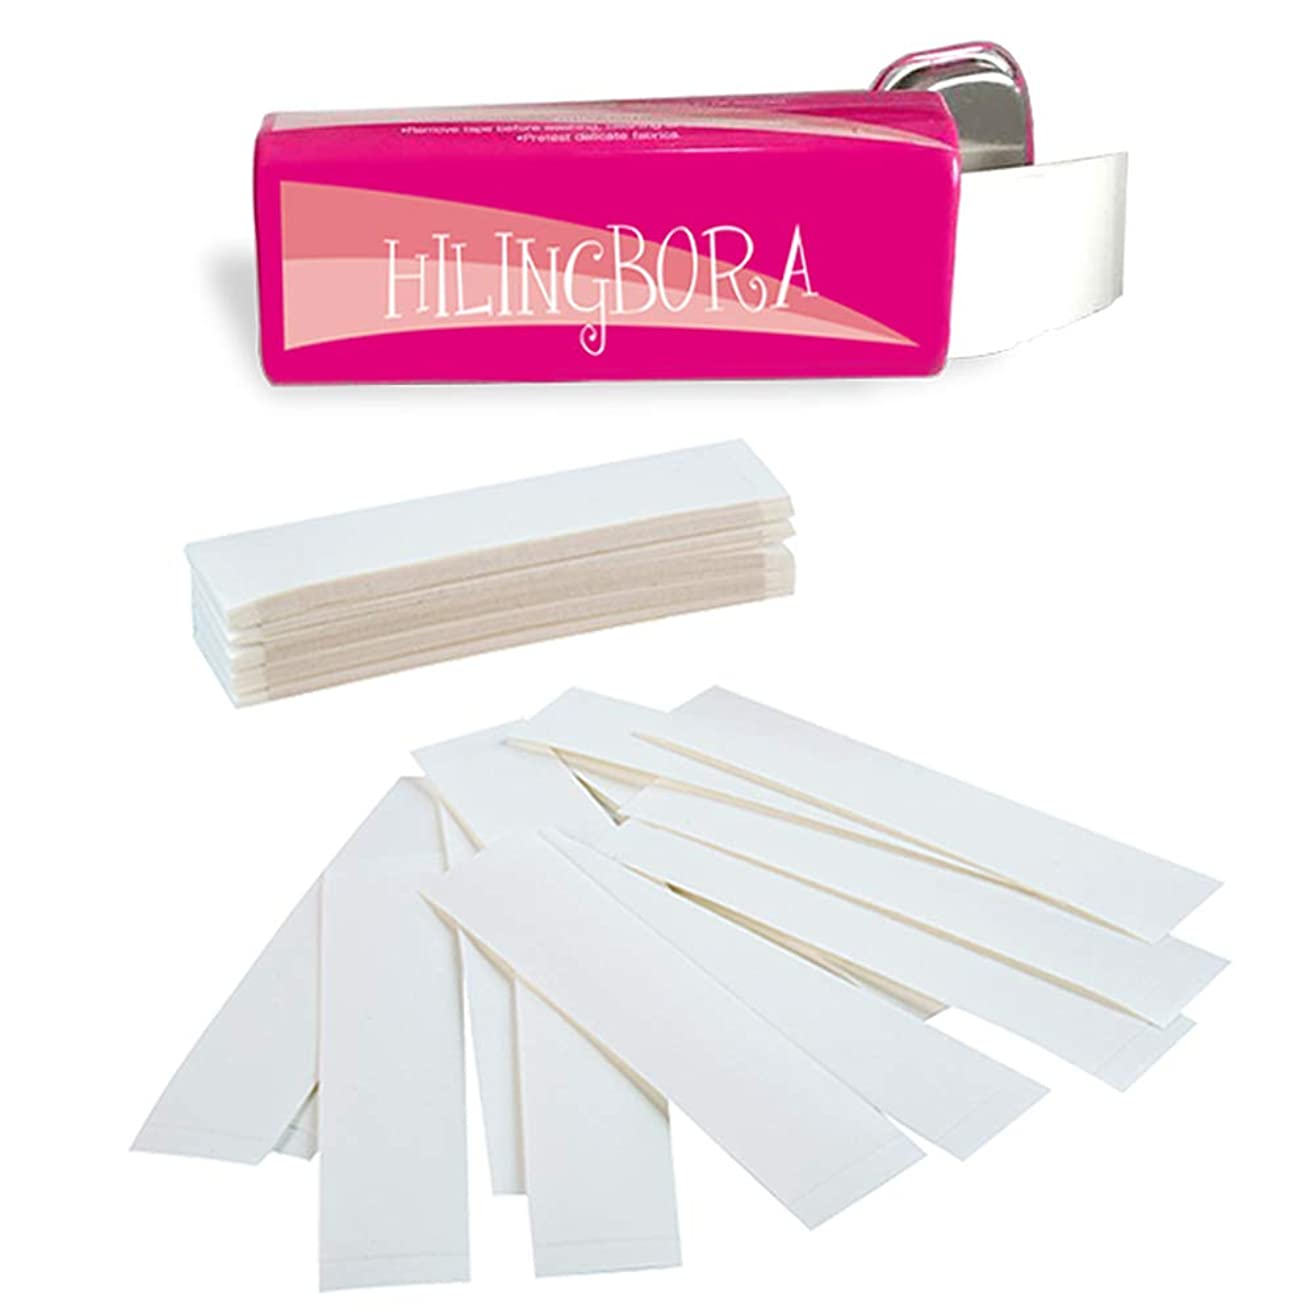 HILINGBORA Fashion Beauty Tape Medical Quality Double Sided For Fashion and Body 1 tin x 30 strips (1 tin x 30 strip)